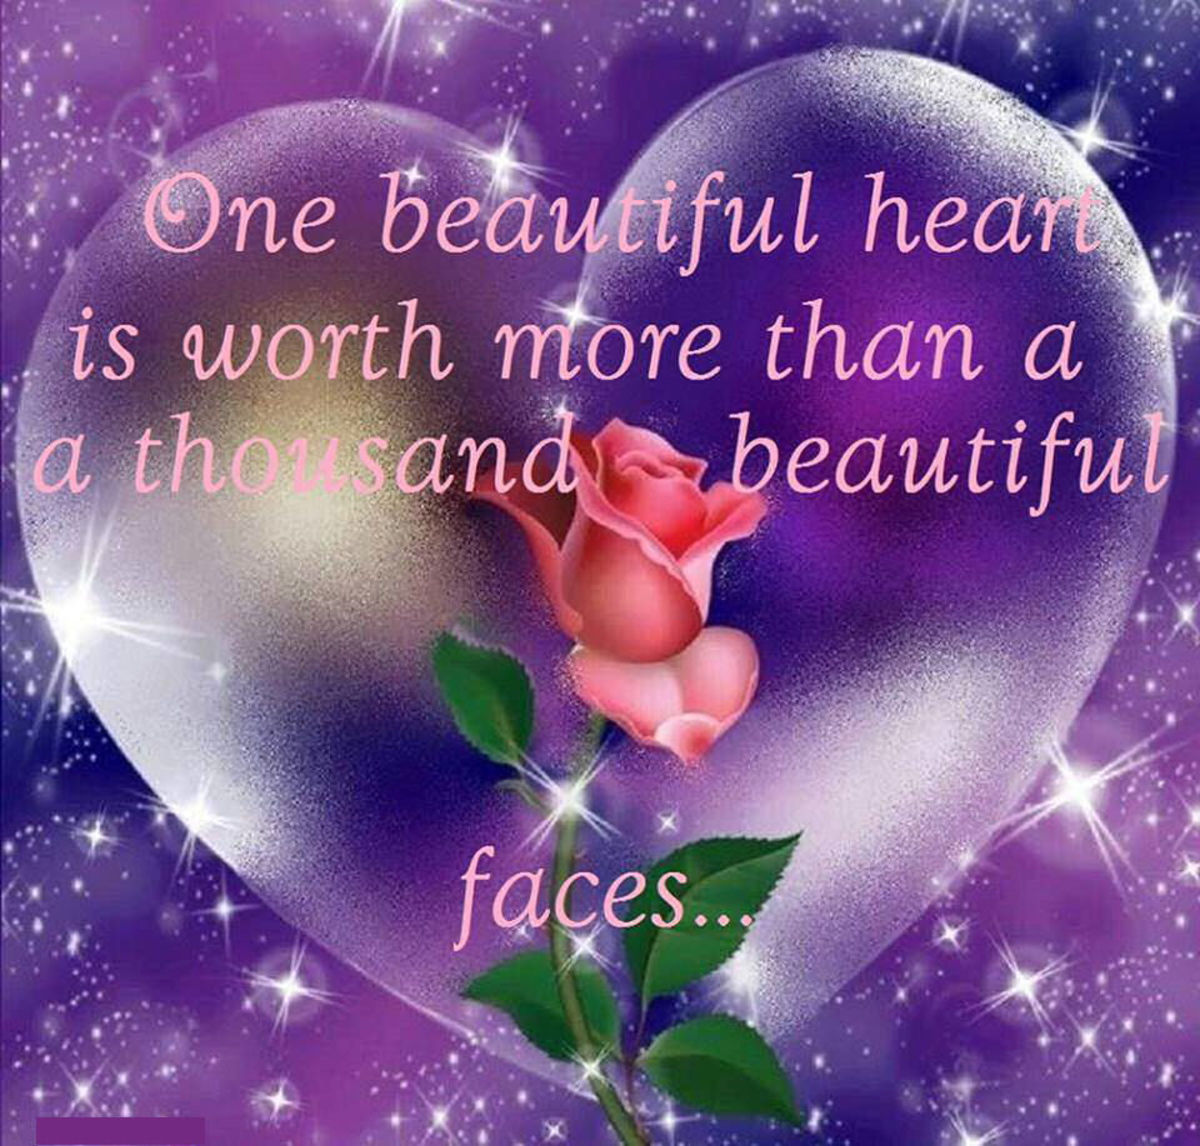 A  New Year's Heart of  Beauty. Monday's Inspiration 62. To a Special Friend Doris James Miz Bejabbers